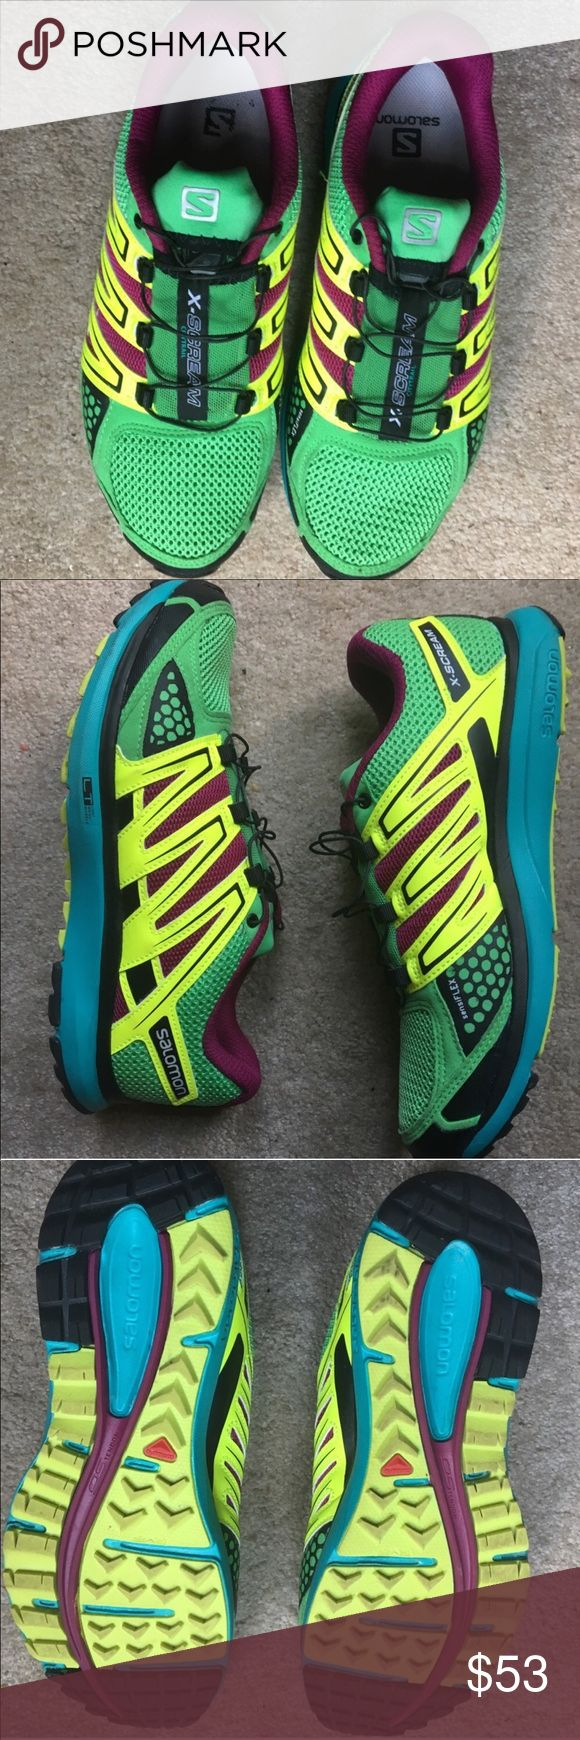 SALOMON X-SCREAM Athletic Shoes GUC Size 8 Light weight, Saldom Used, no tears no rips Salomon Shoes Athletic Shoes